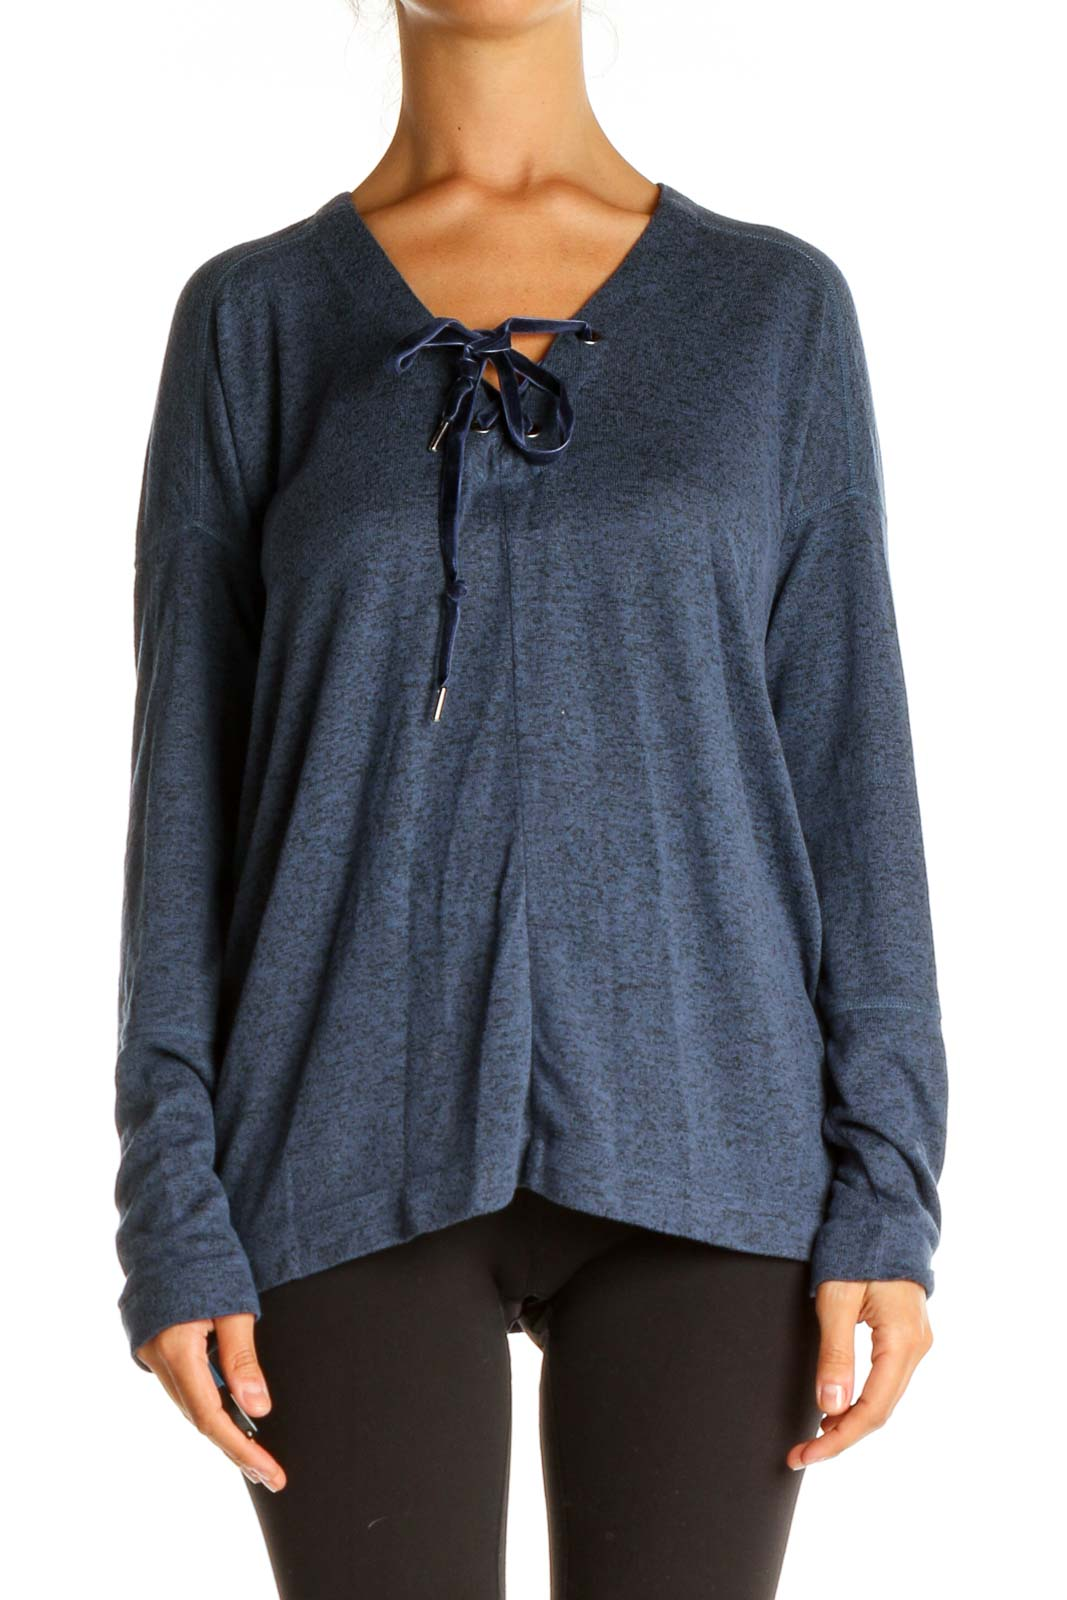 Blue Casual Top Front